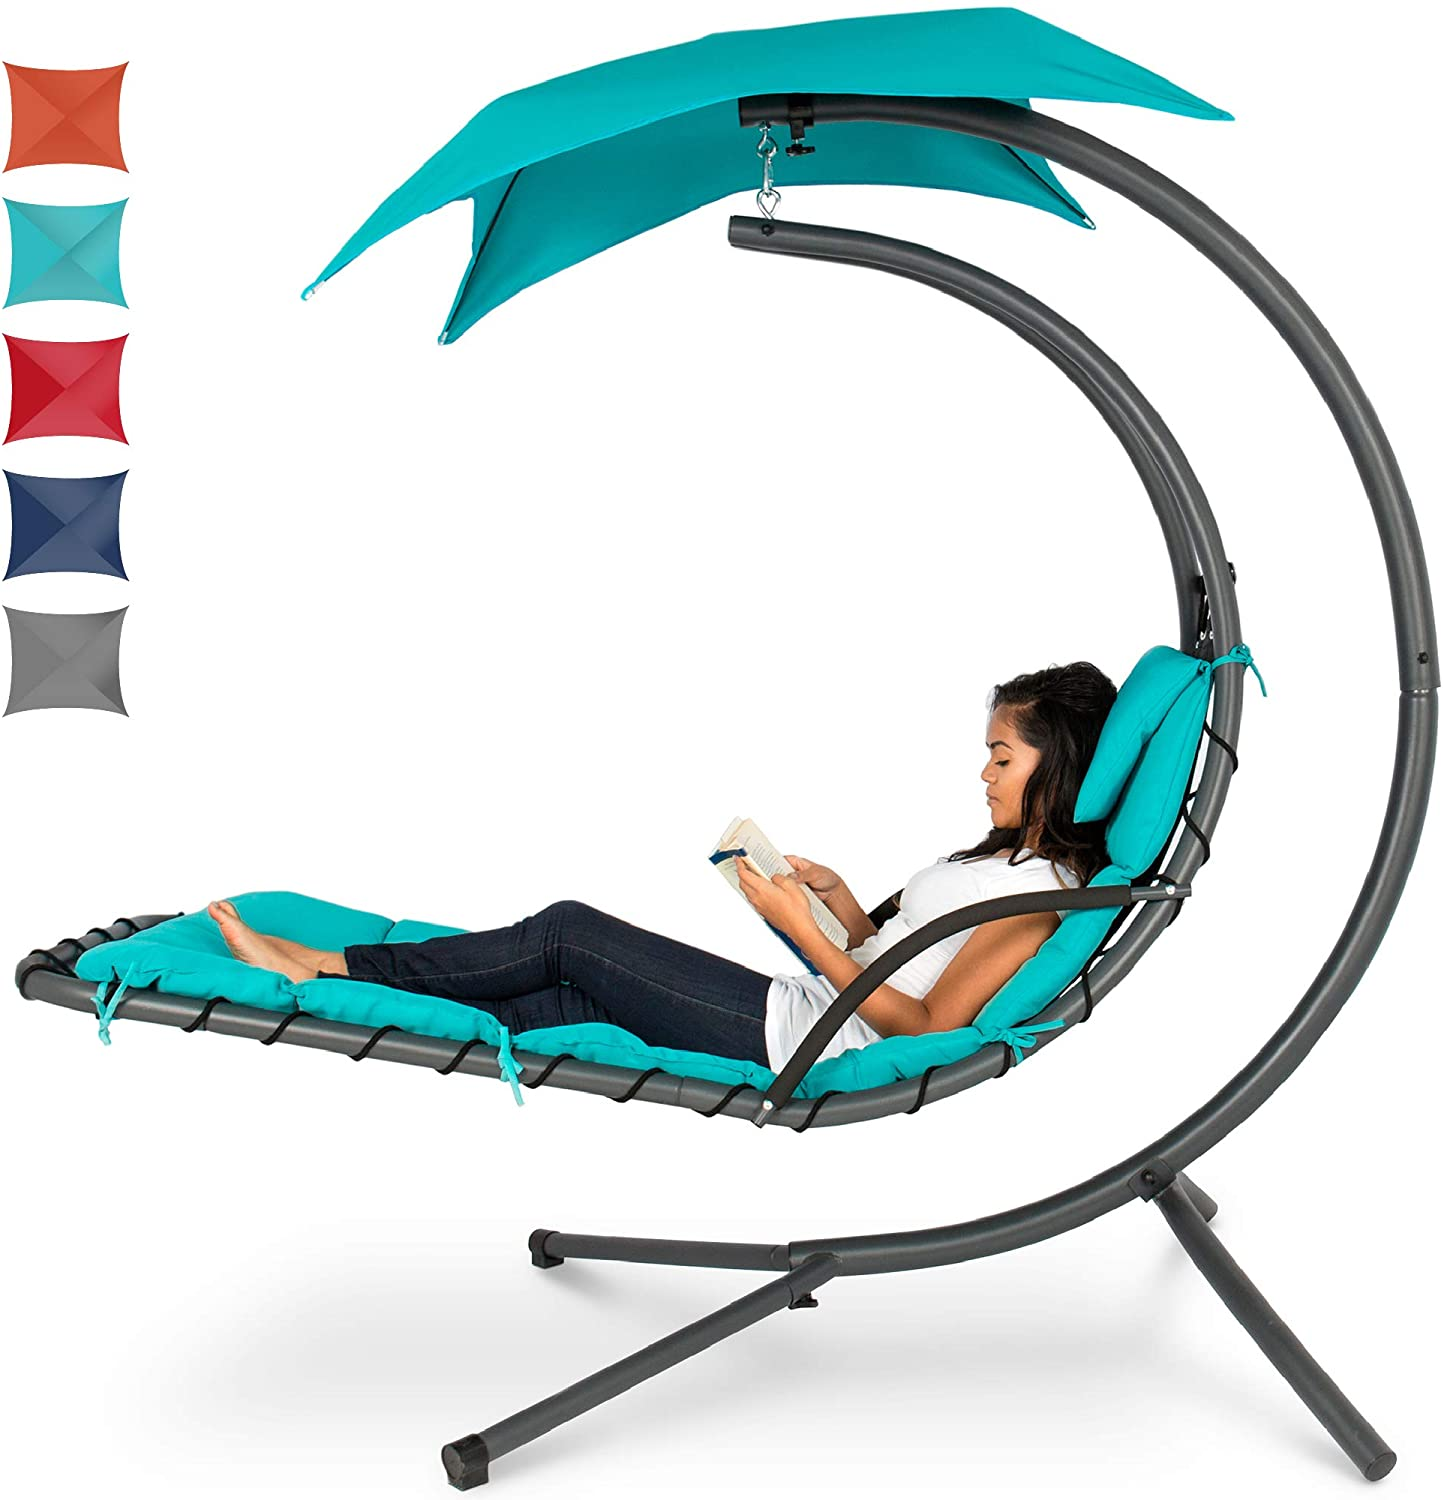 Hanging Curved Chaise